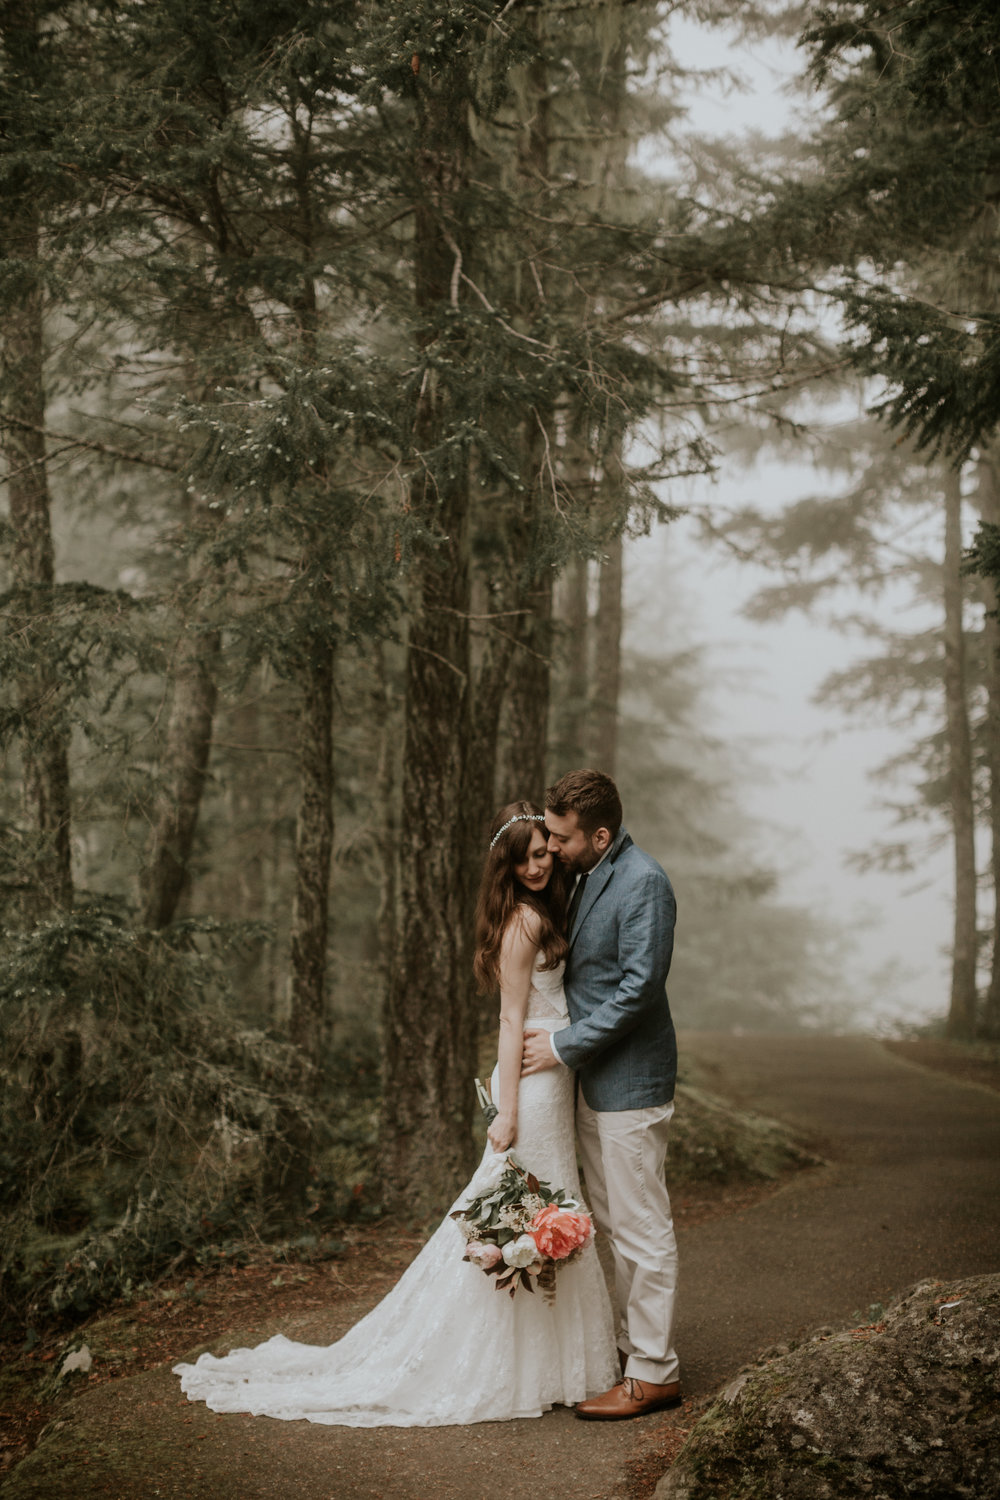 PNW-elopement-wedding-engagement-olympic national park-port angeles-hurricane ridge-lake crescent-kayla dawn photography- photographer-photography-kayladawnphoto-130.jpg